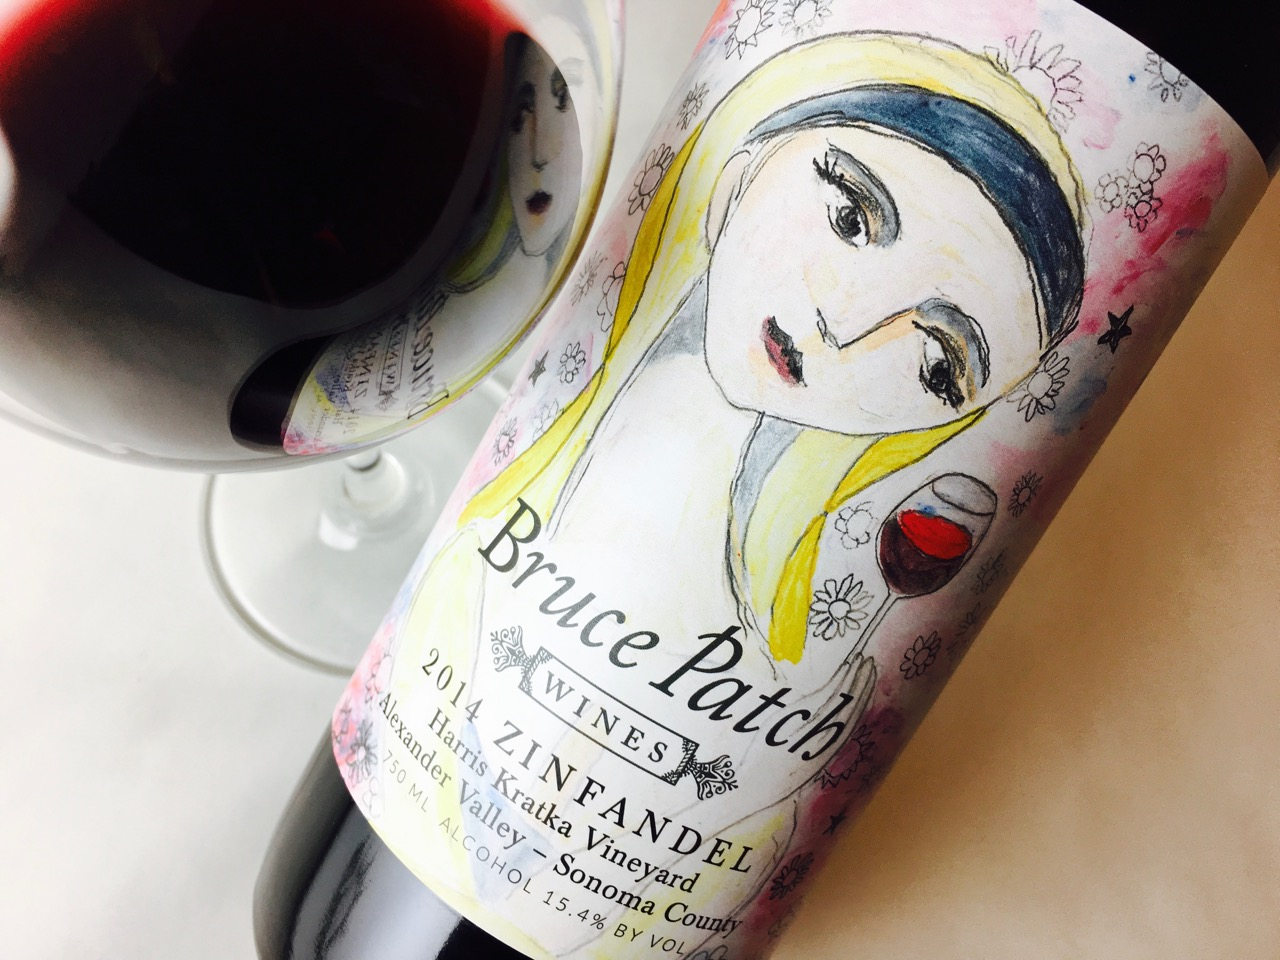 2014 Bruce Patch Wines Zinfandel Harris Kratka Vineyard Alexander Valley, Sonoma County